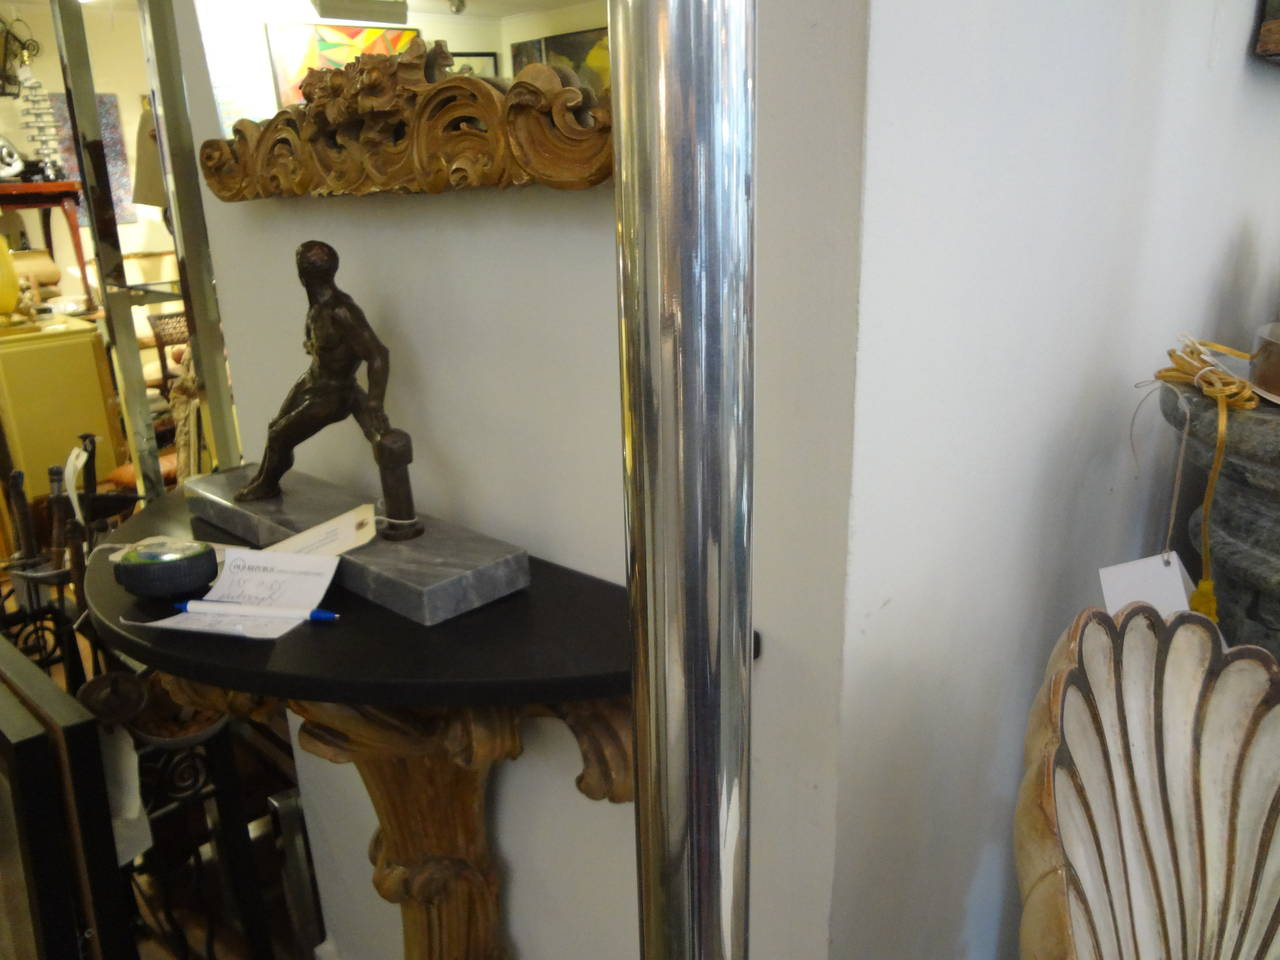 Mid-20th Century Italian Postmodern or Mid-Century Modern Torchère Floor Lamp, Made in Milan For Sale